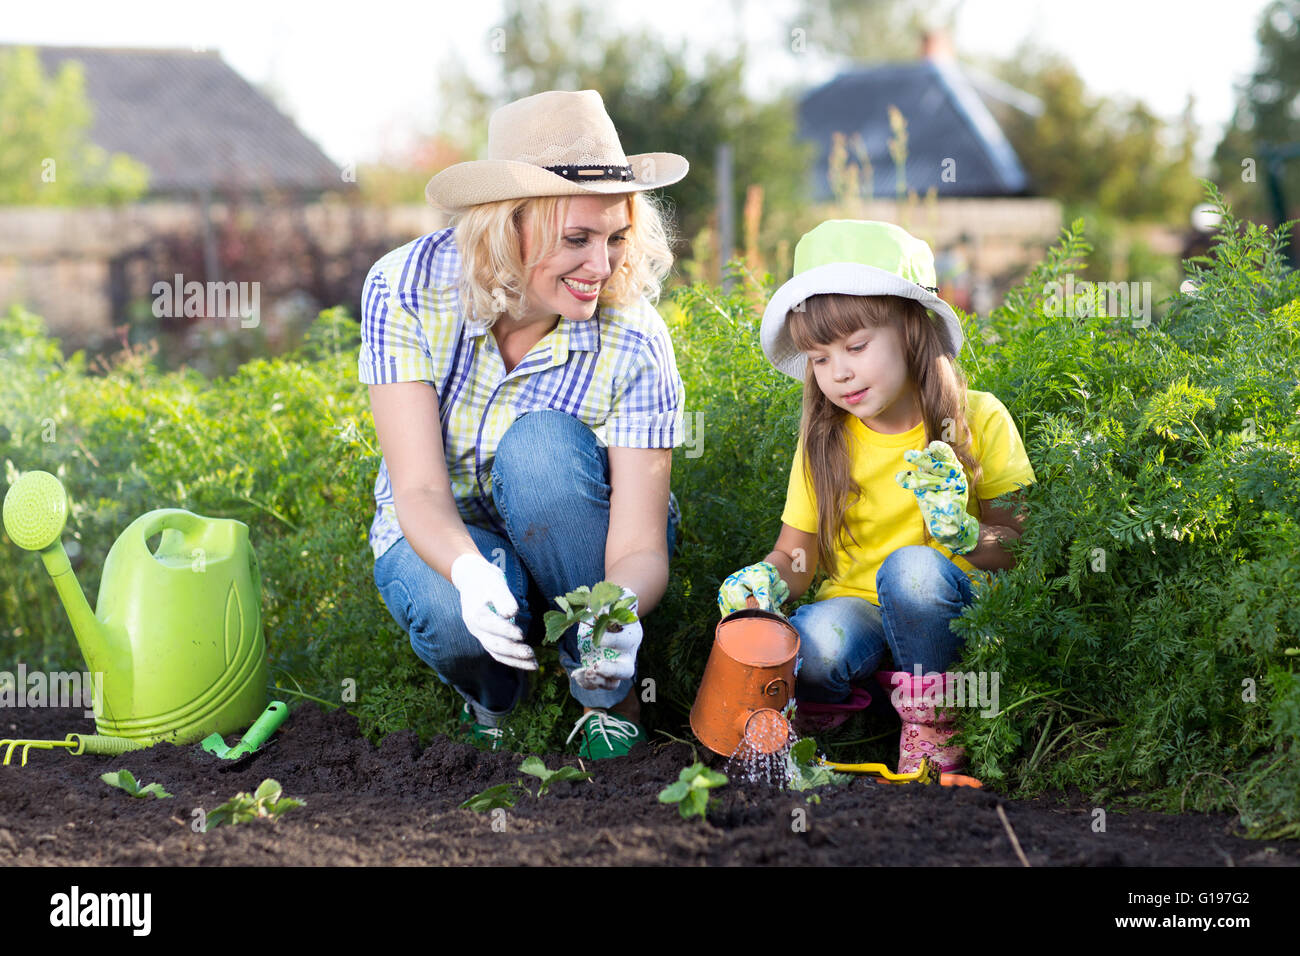 Mother and kid daughter planting strawberry seedling in a garden. Little girl watering new plants. Stock Photo